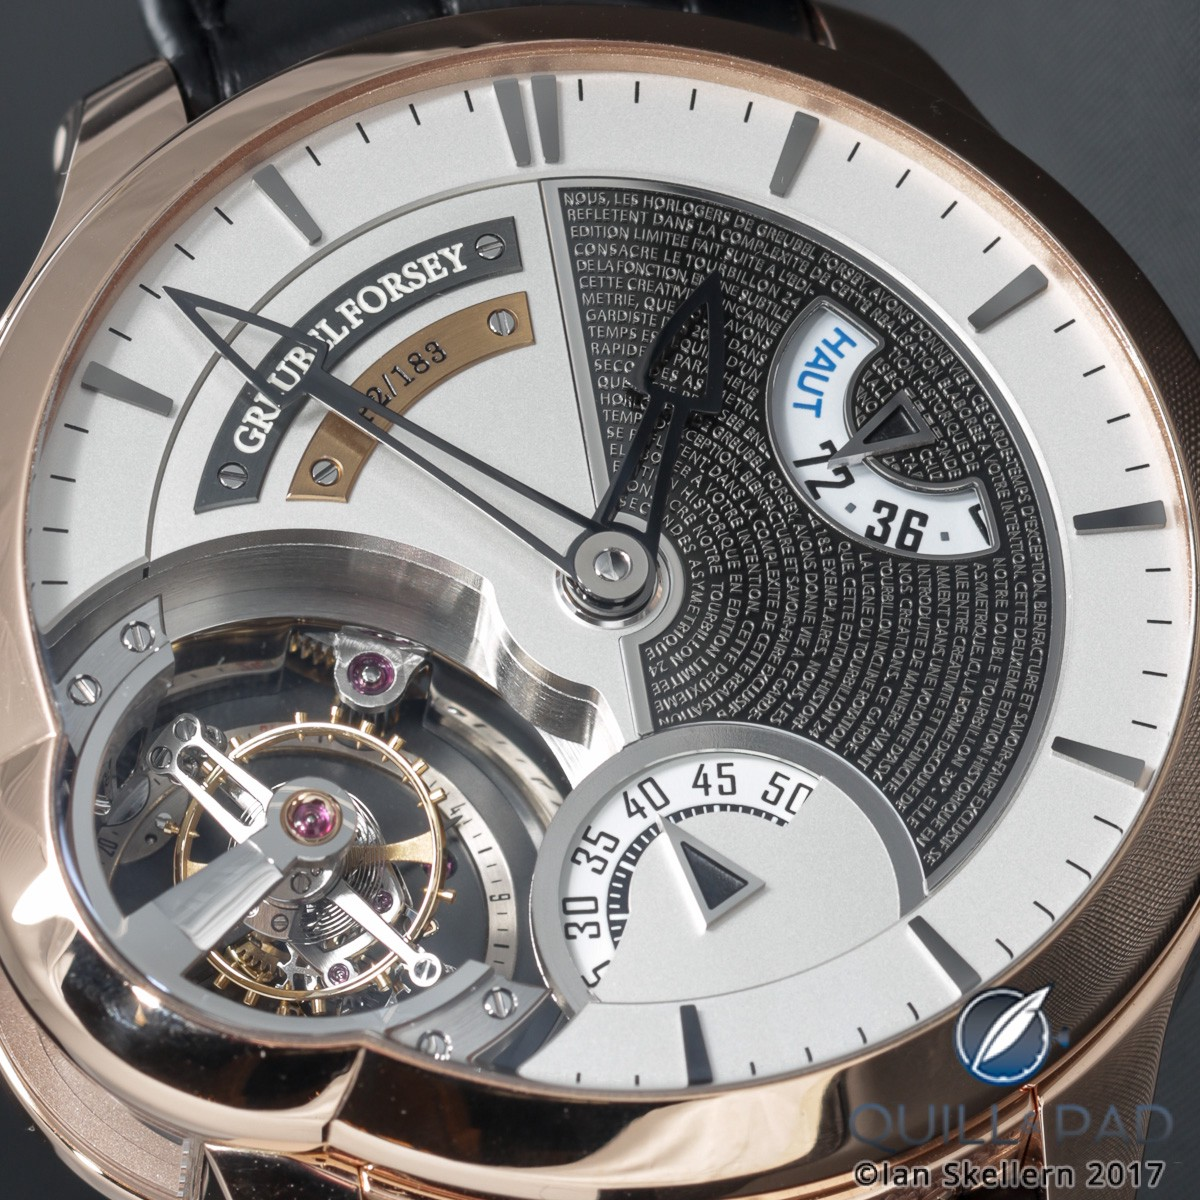 Close up look dial side of the Greubel Forsey Tourbillon 24 Secondes Edition Historique in red gold